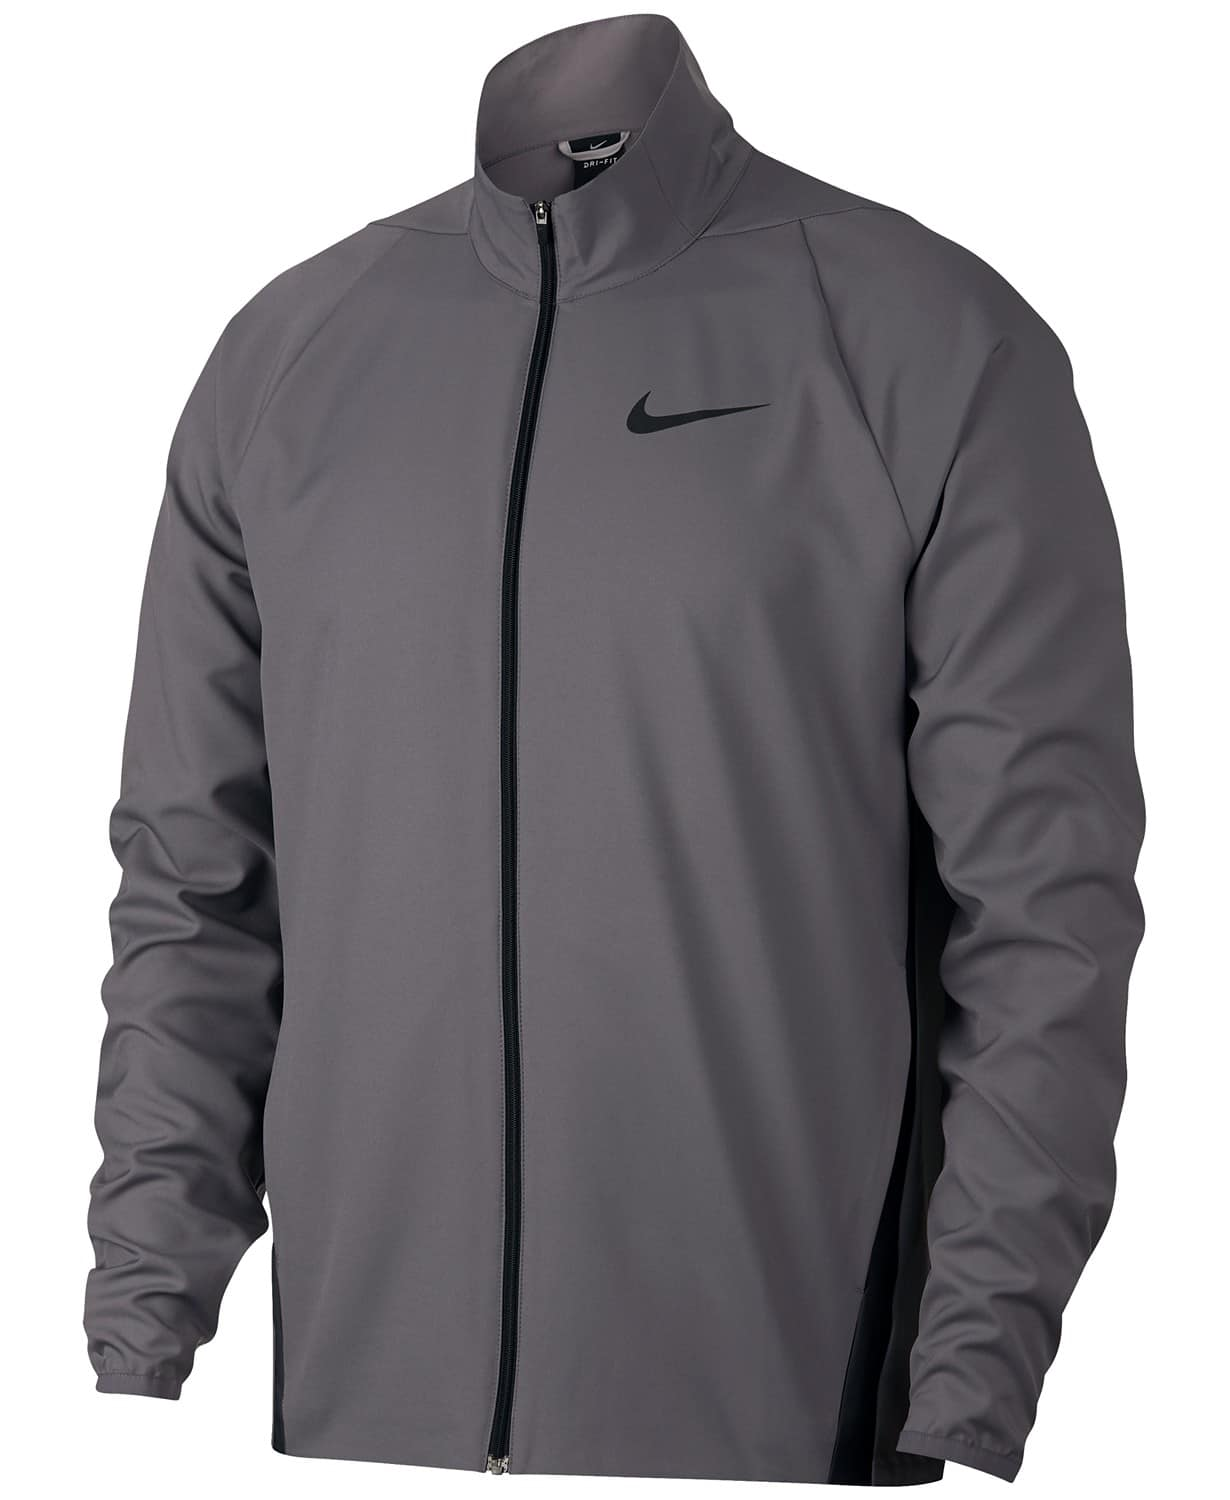 Men's Dry Woven Training Jacket $26 (60% off - sale ends 10/7)